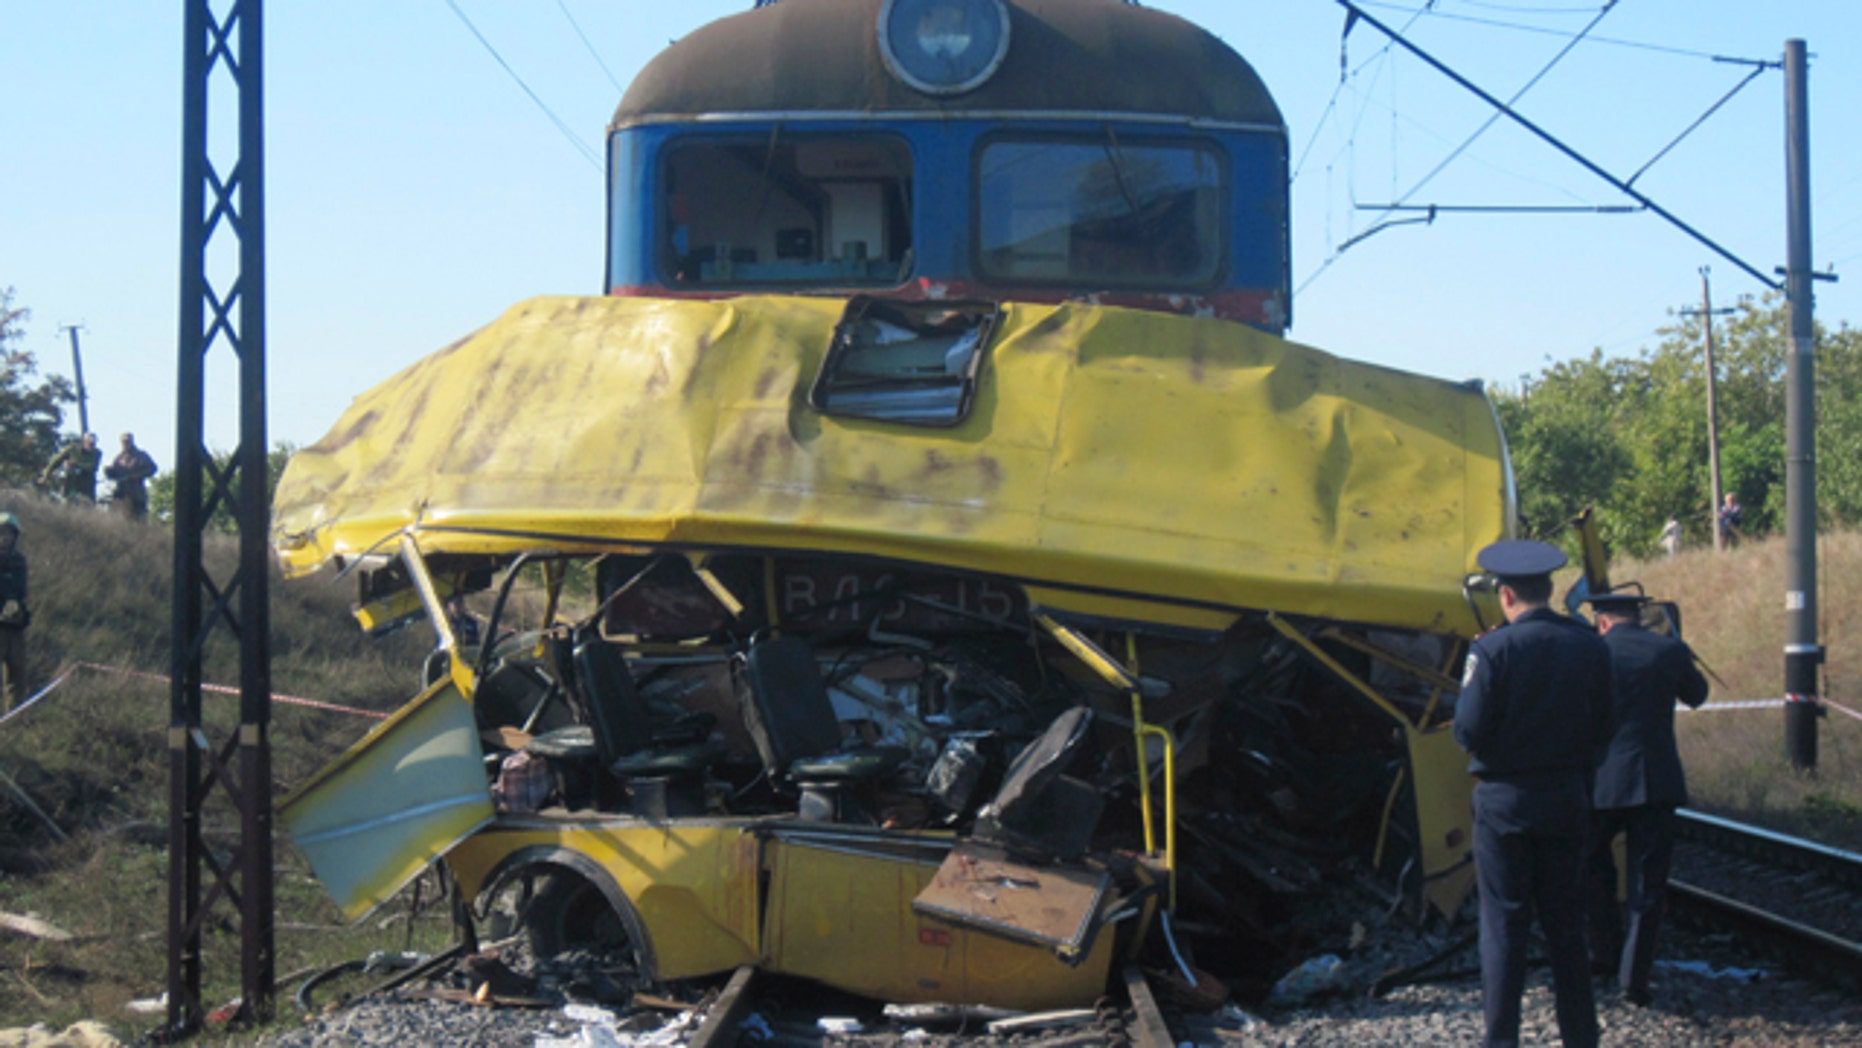 The remains of a bus lay next to a railway train at the site of an accident outside the town of Marhanets, Ukraine, Tuesday, Oct. 12, 2010. The crowded passenger bus collided with a train in eastern Ukraine Tuesday, killing 40 people and leaving 11 in critical condition, police said.